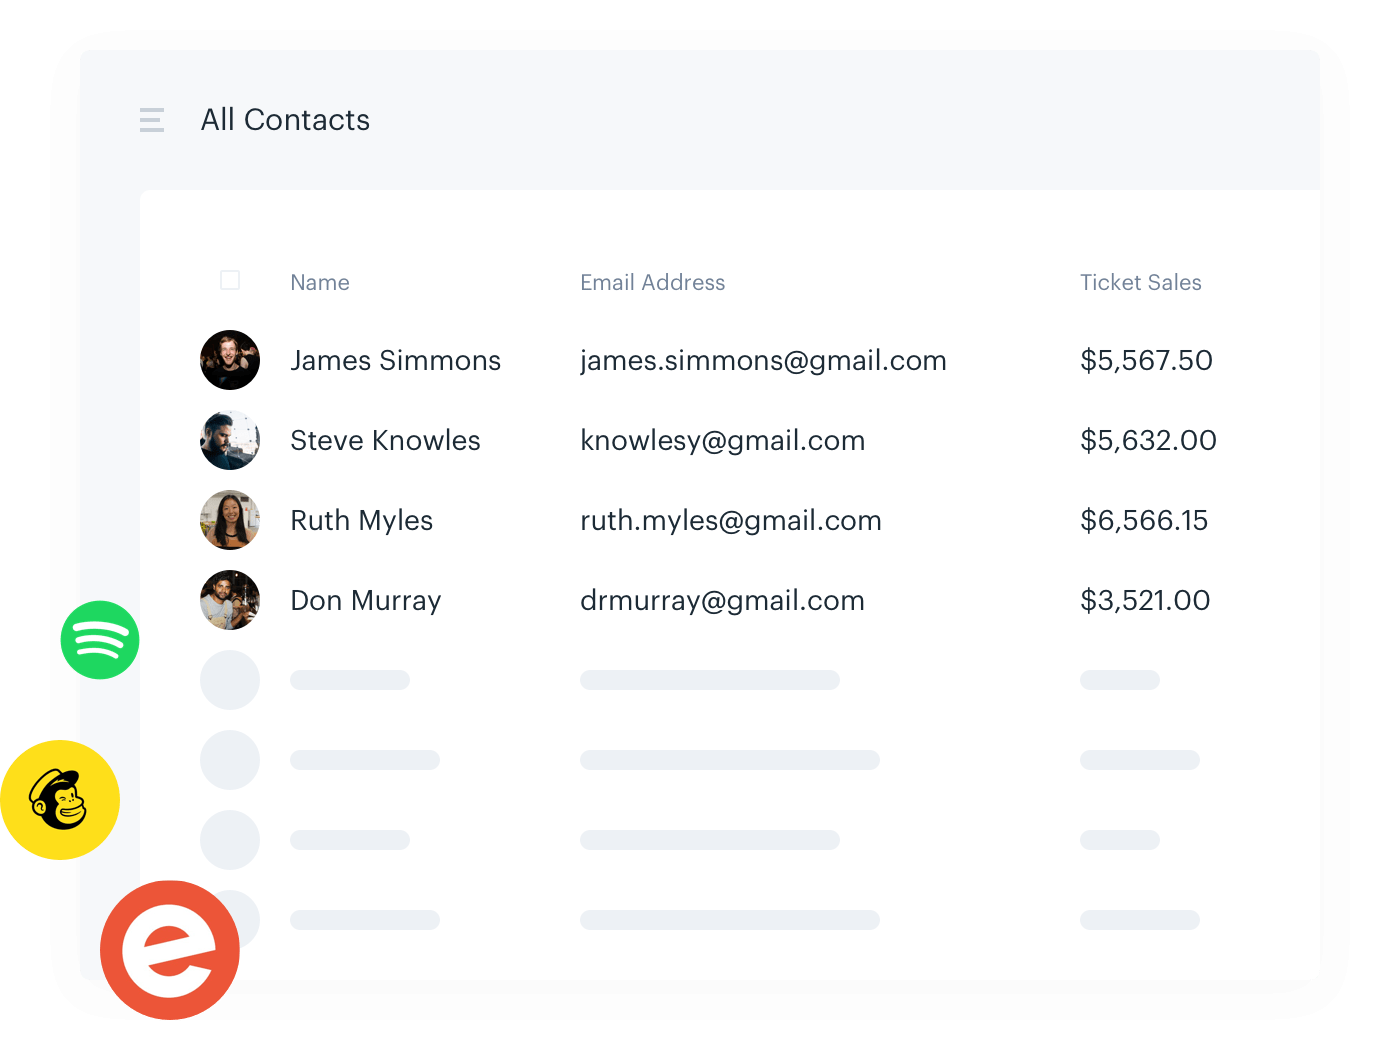 A screenshot of the top spending ticket buyers table on the Audience Republic platform